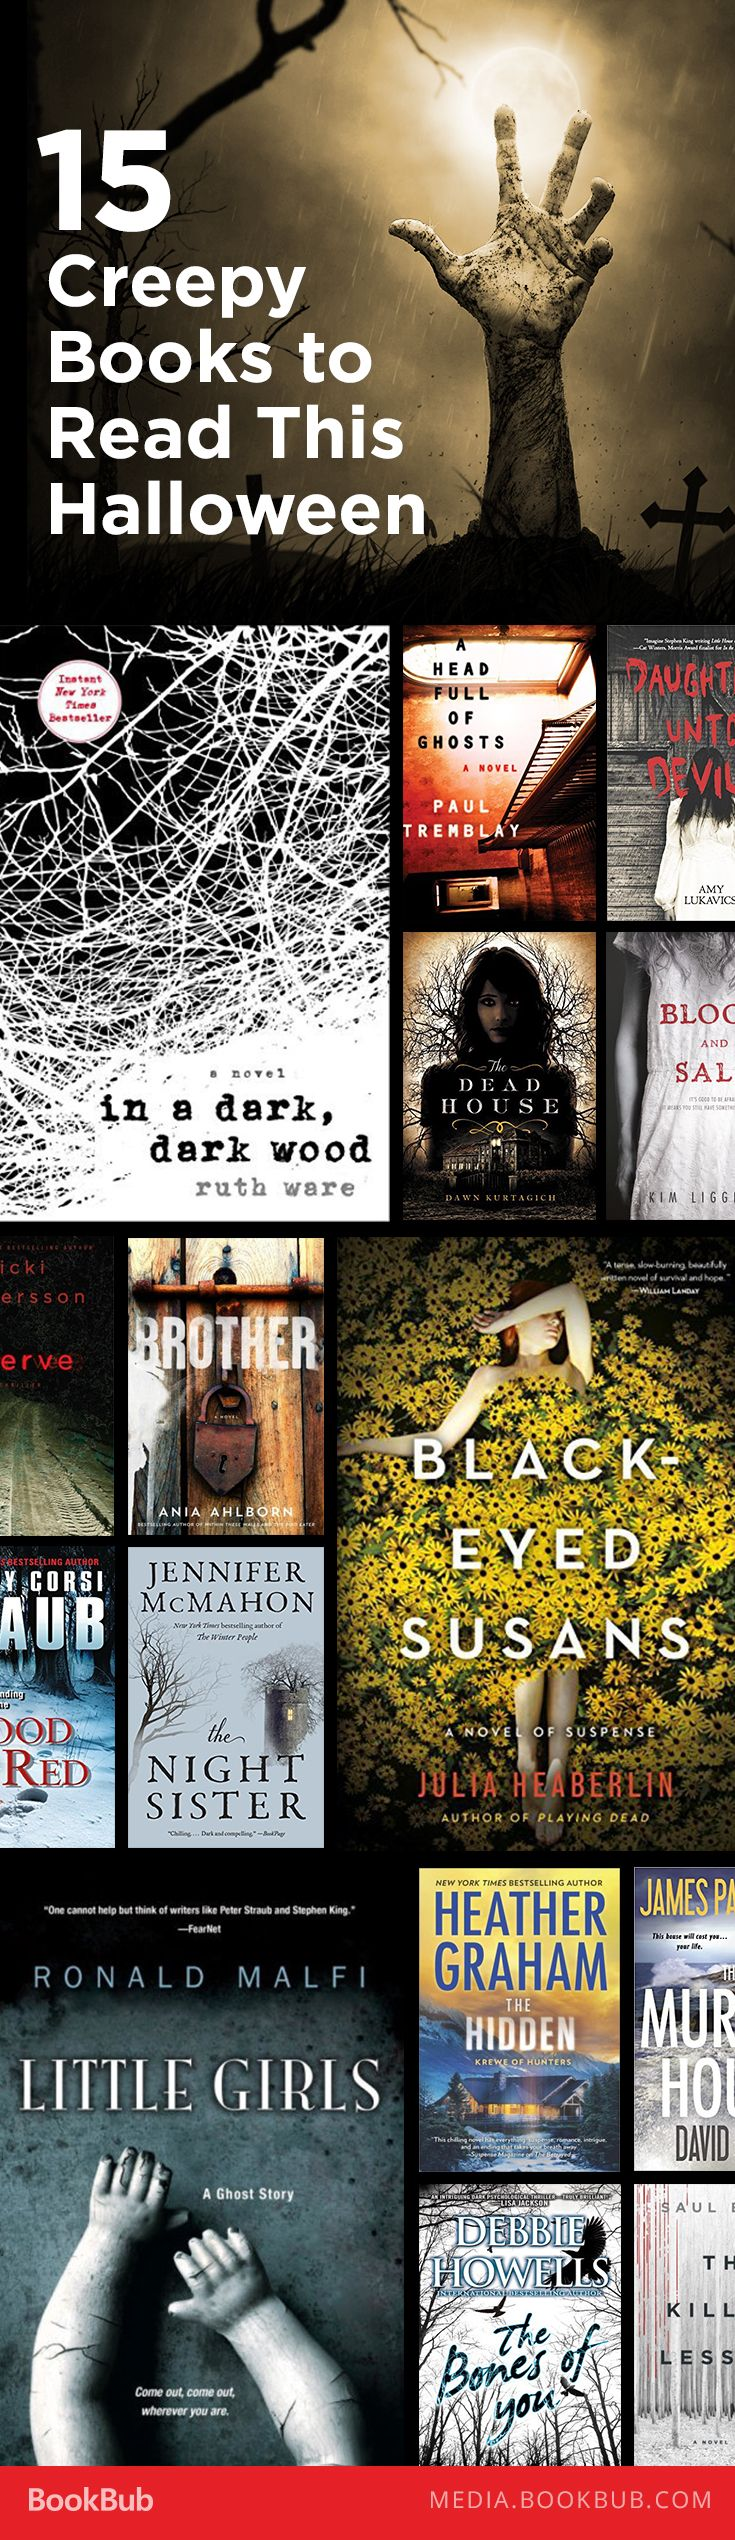 15 Creepy New Books To Read This Halloween